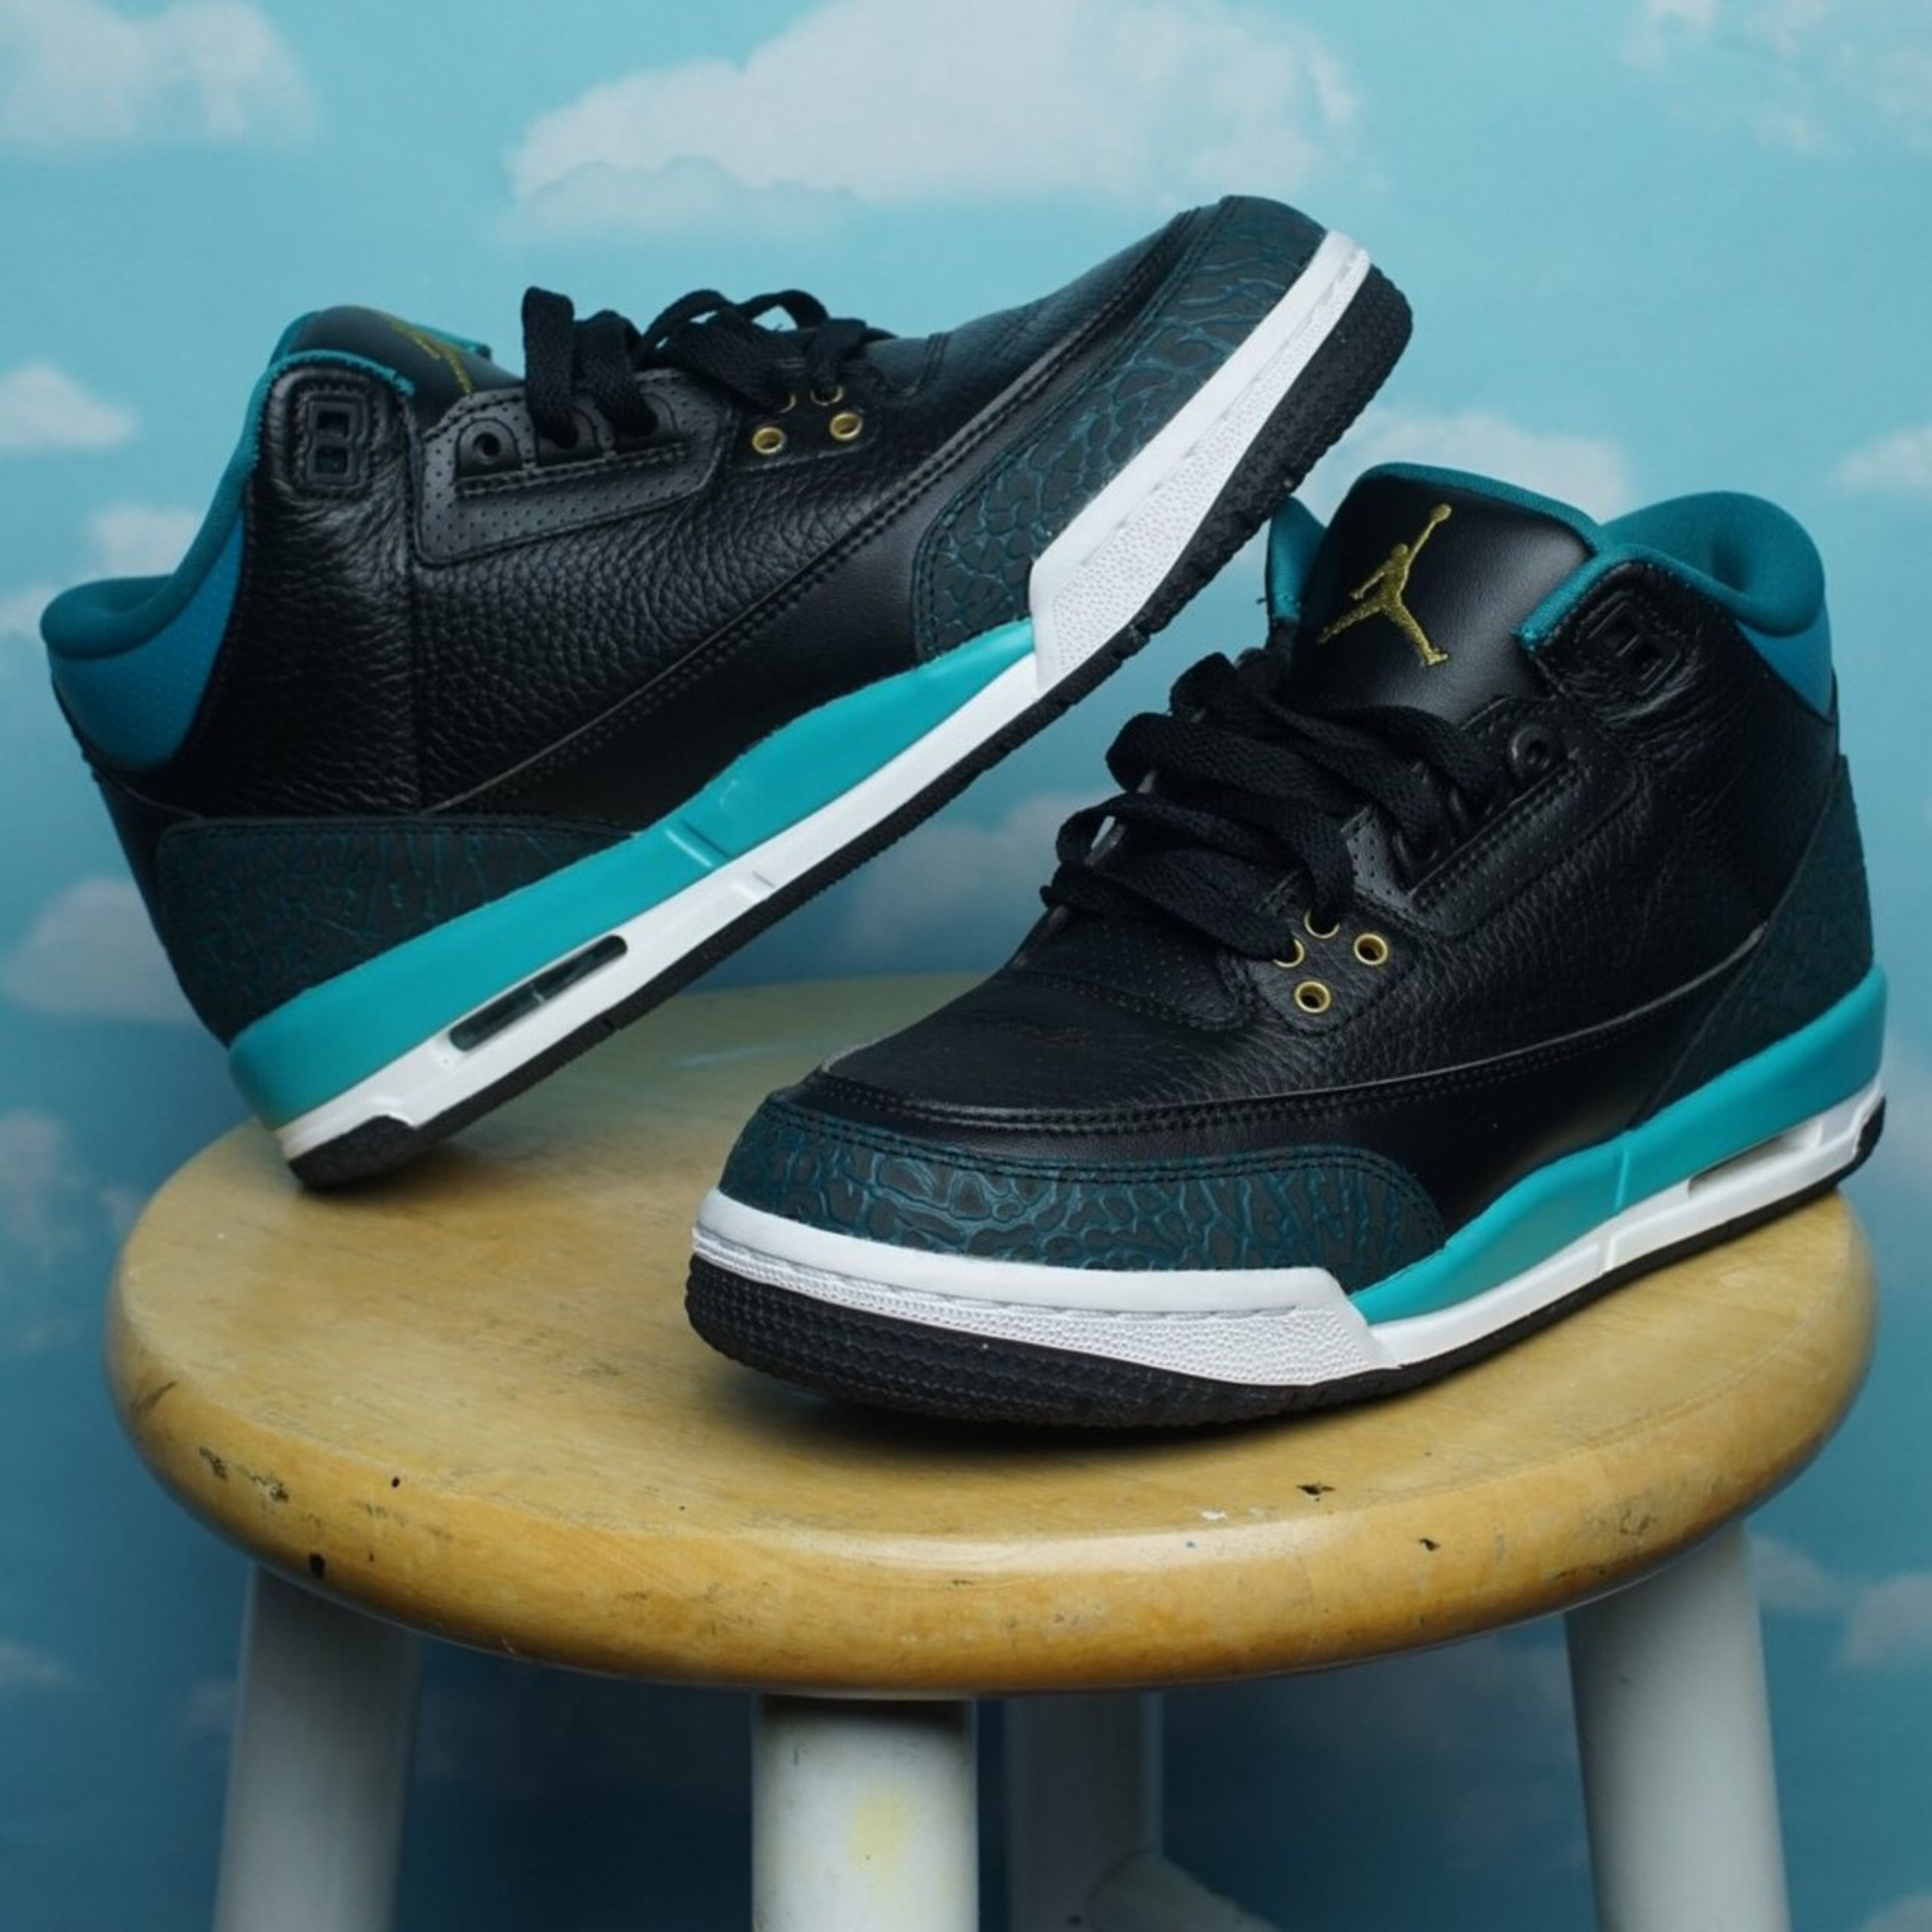 brand new 02260 410bf Air Jordan 3 Retro Rio Teal